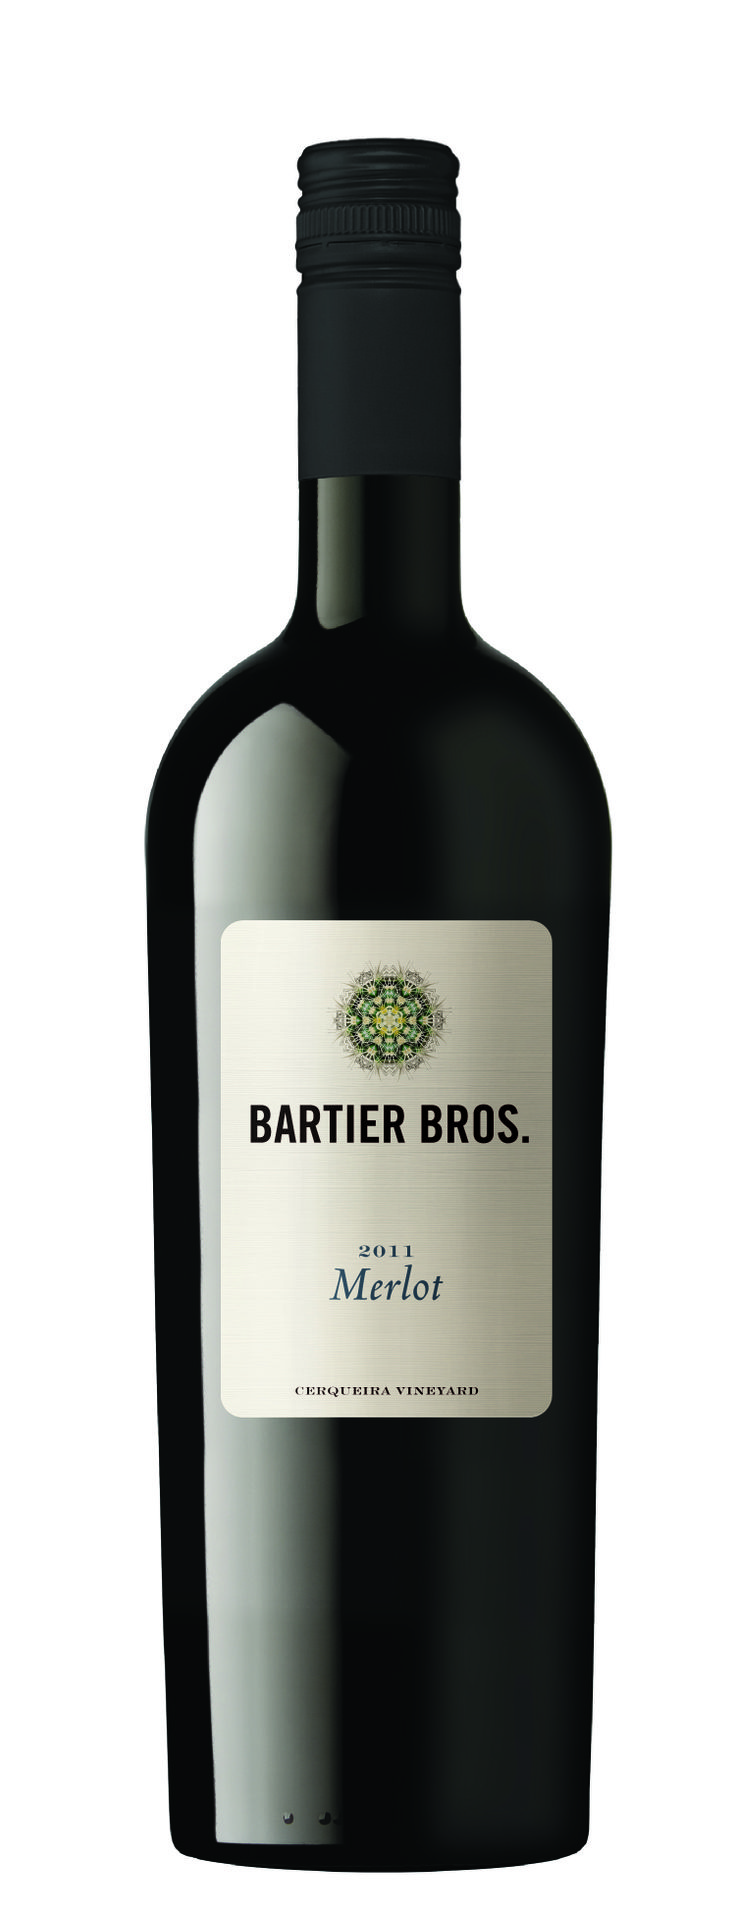 Bartier Bros. - 2011 Merlot - This is a big wine in every way. Intense, concentrated aromas of blackberries, cherries, and toffee. The wine is very full bodied with aggressive tannins. Mixed grill or steak of any type will pair well with this wine. #bcwine #wine #okanagan